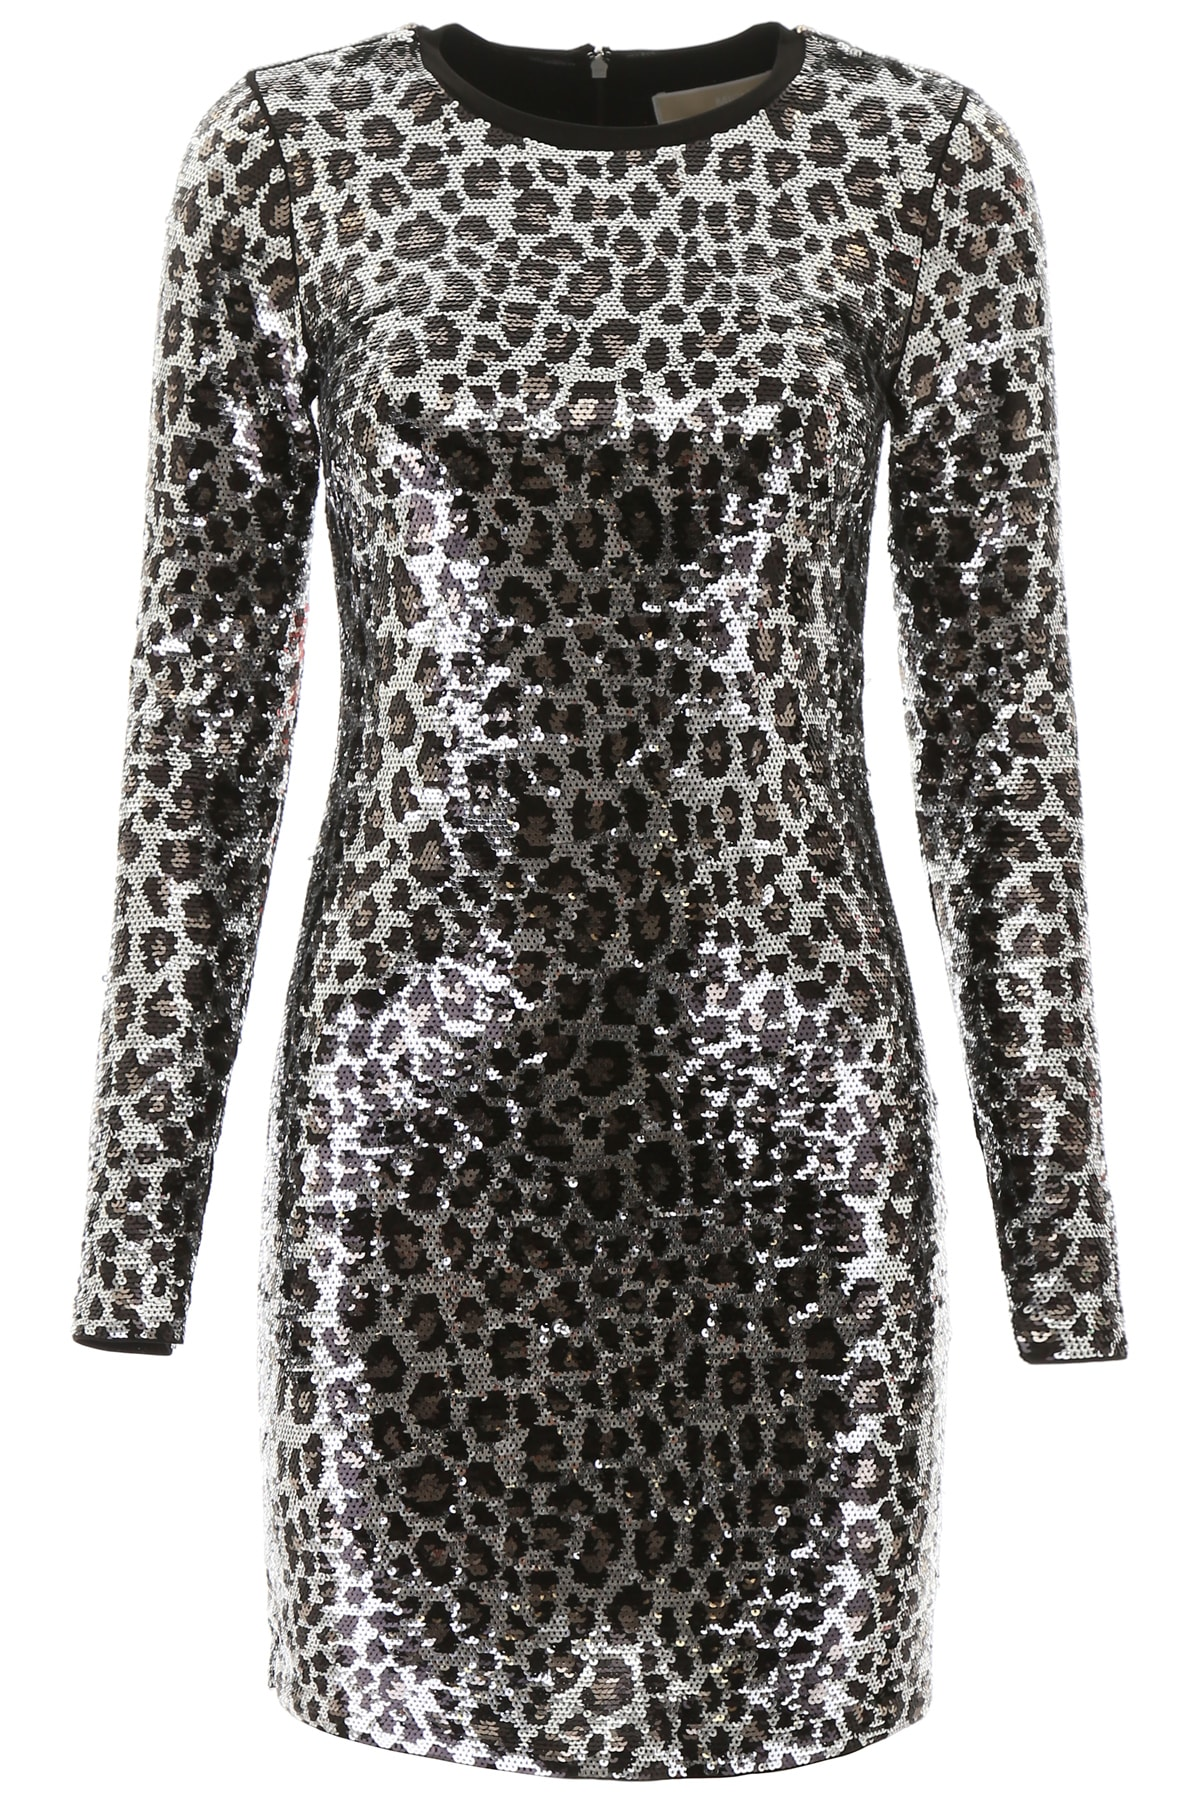 MICHAEL Michael Kors Animalier Sequins Mini Dress